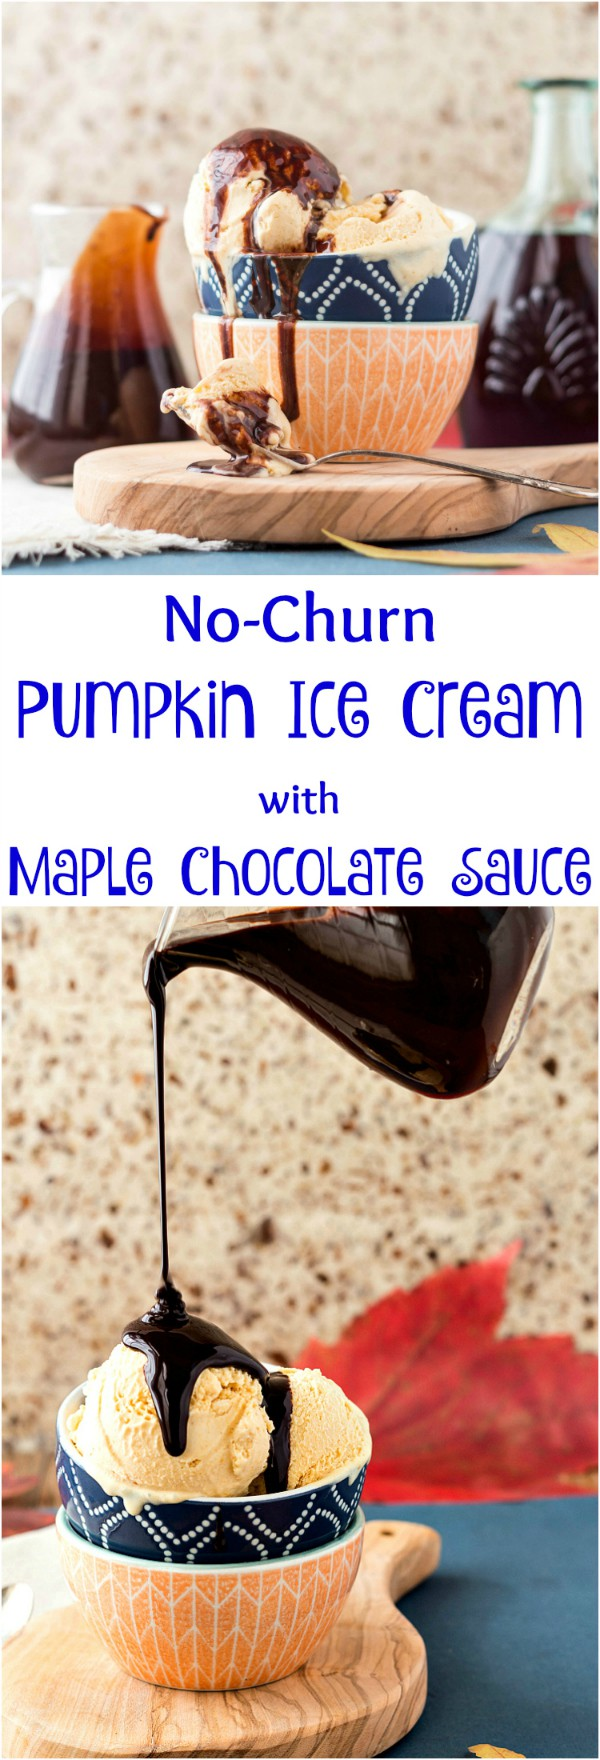 Orange-Cardamom Pumpkin Ice Cream is no-churn and bridges the gap between summer and fall flavors. Find the recipe here, and if you'd like to make the Maple Chocolate Sauce that goes with it, you'll find both recipes over at The Heritage Cook. | pastrychefonline.com